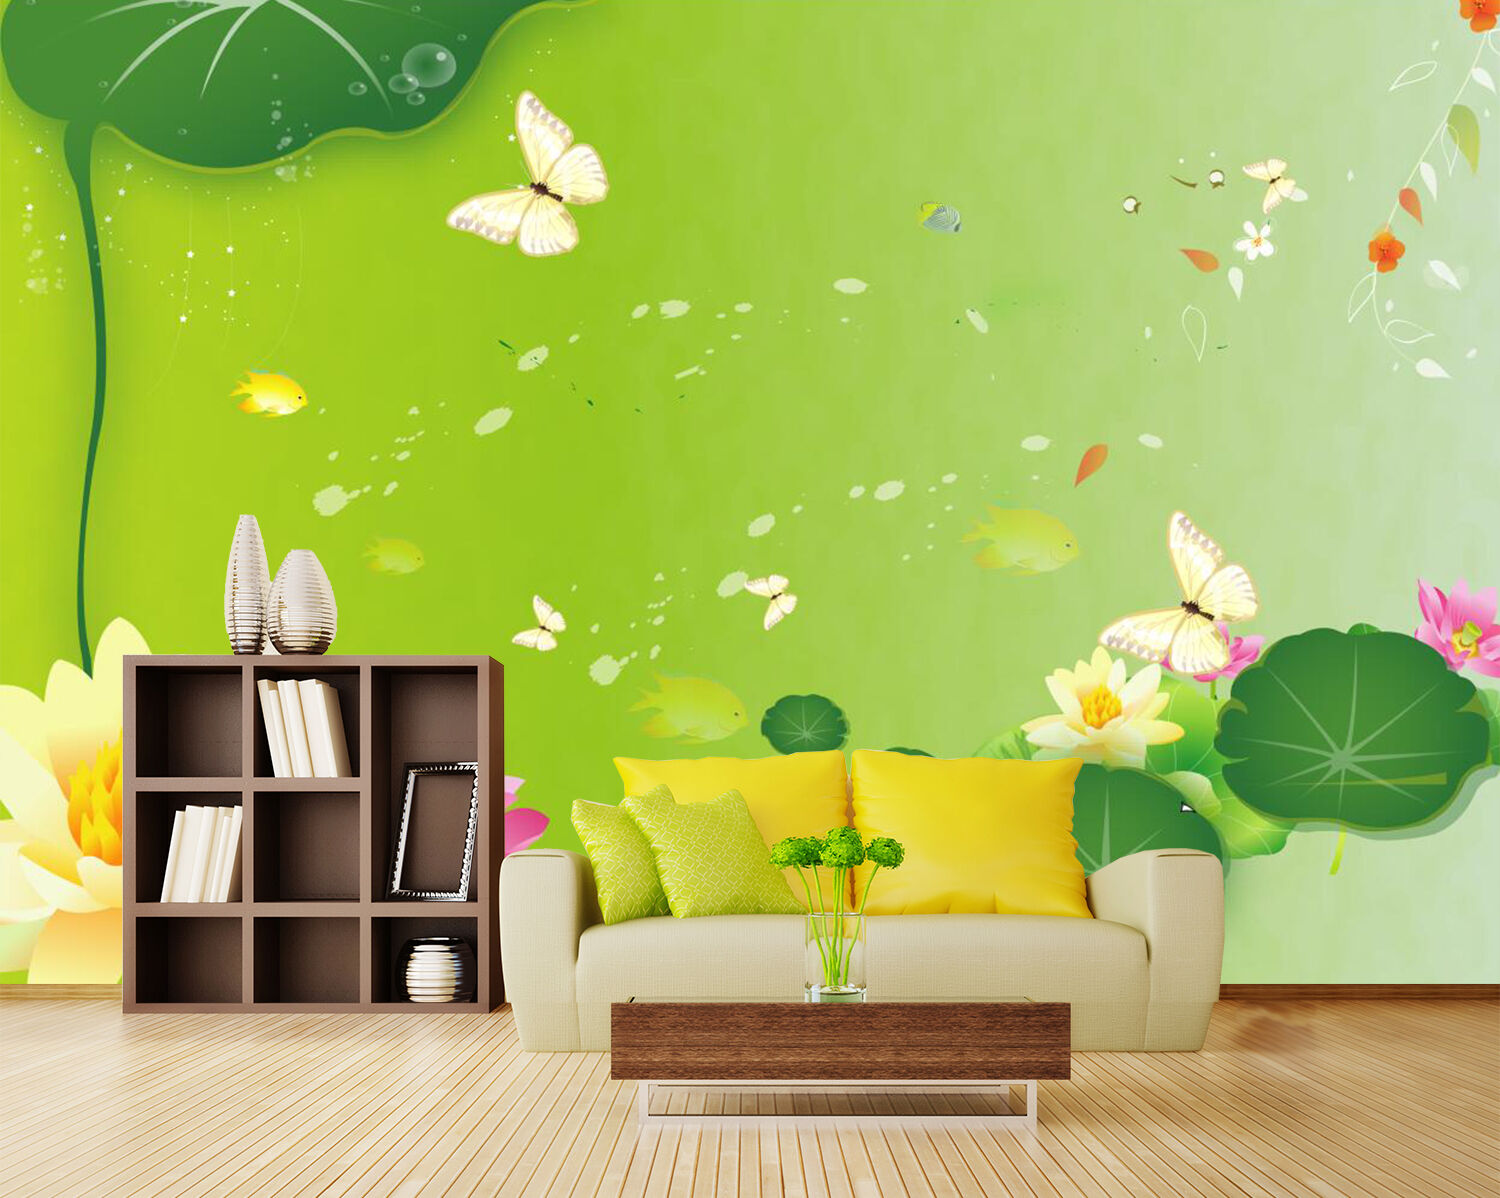 3D 3D 3D Lotus Pond Butterfly 5530 Wall Paper Wall Print Decal Wall AJ WALLPAPER CA 6b87f3